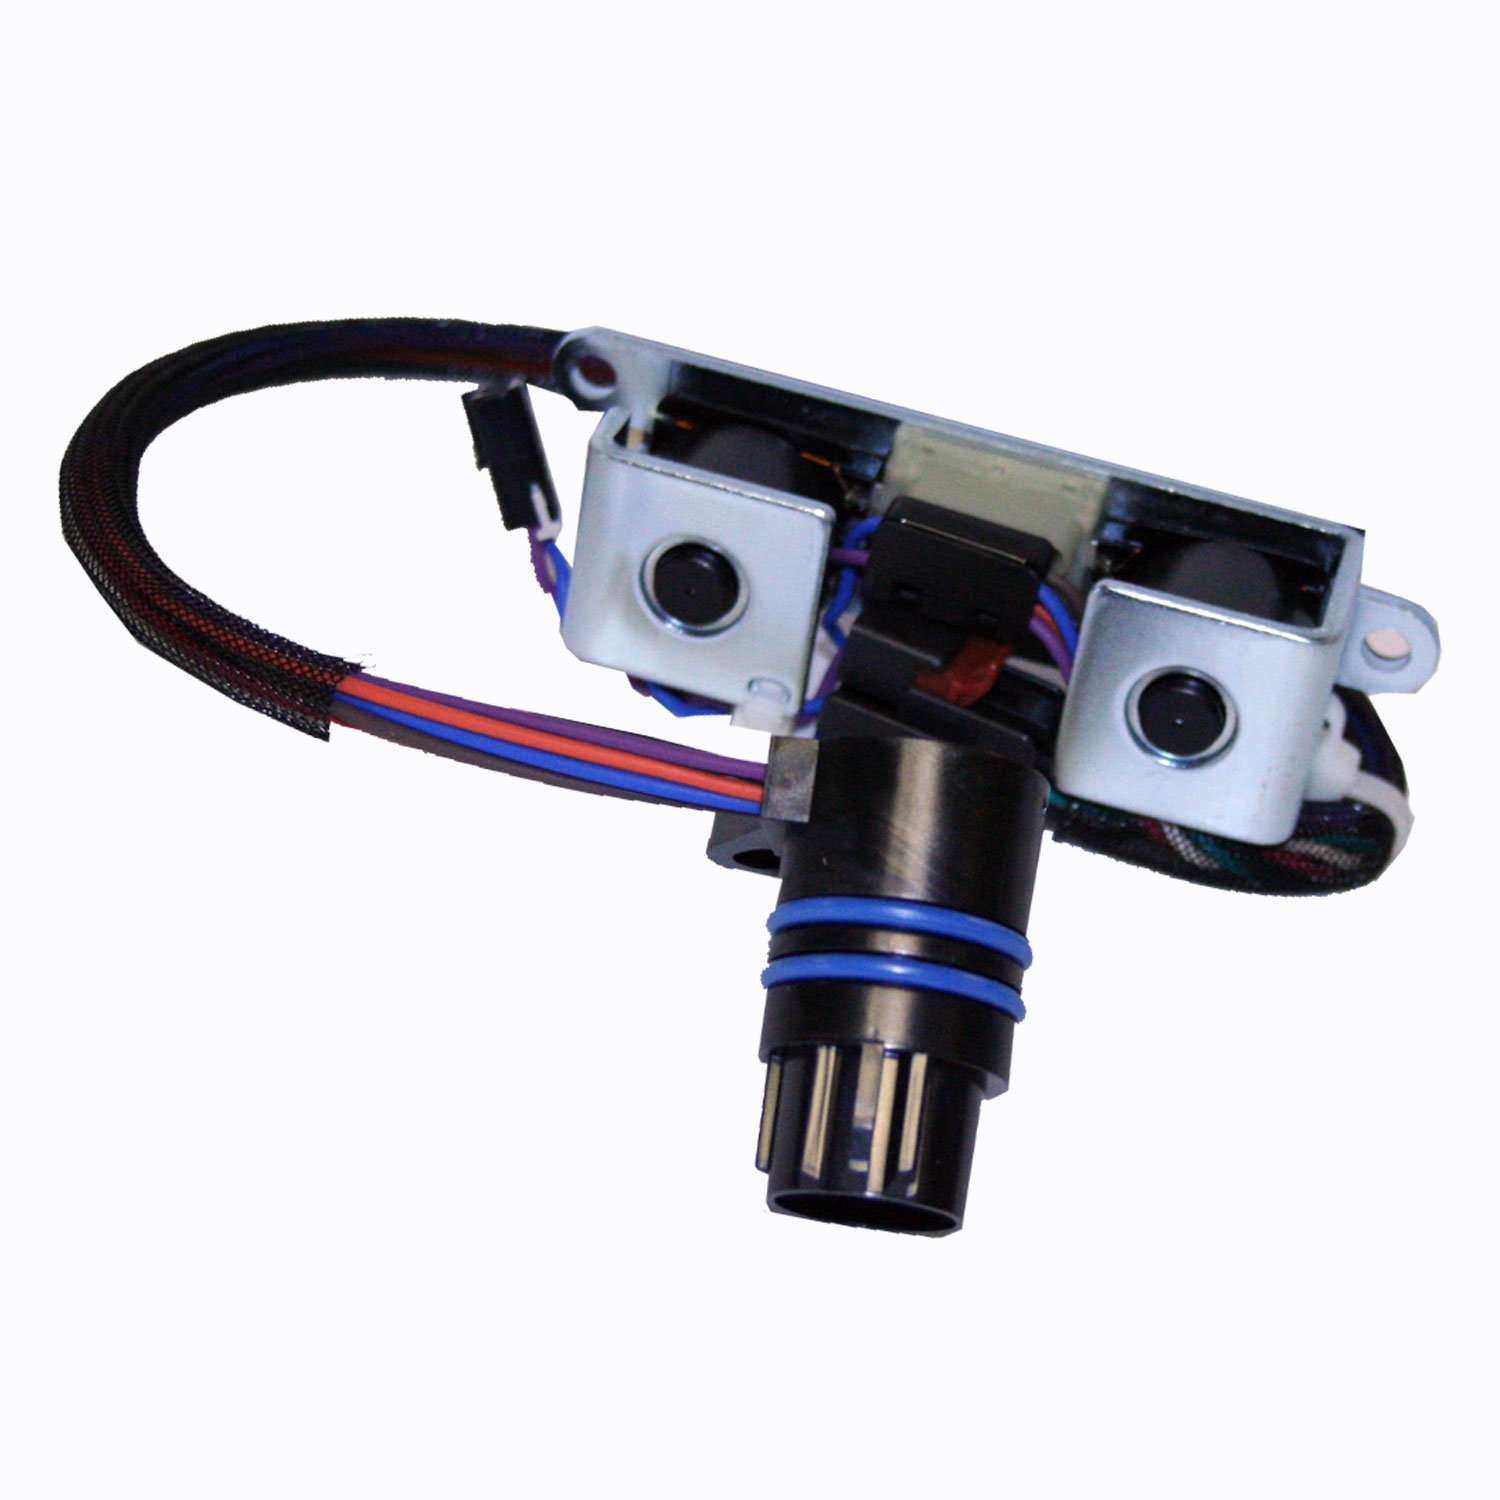 DACCO 22954C Solenoid, Lock-Up & Overdrive, Wire Harness, Dual 8 Pin/4Pin, A500/A518 & More